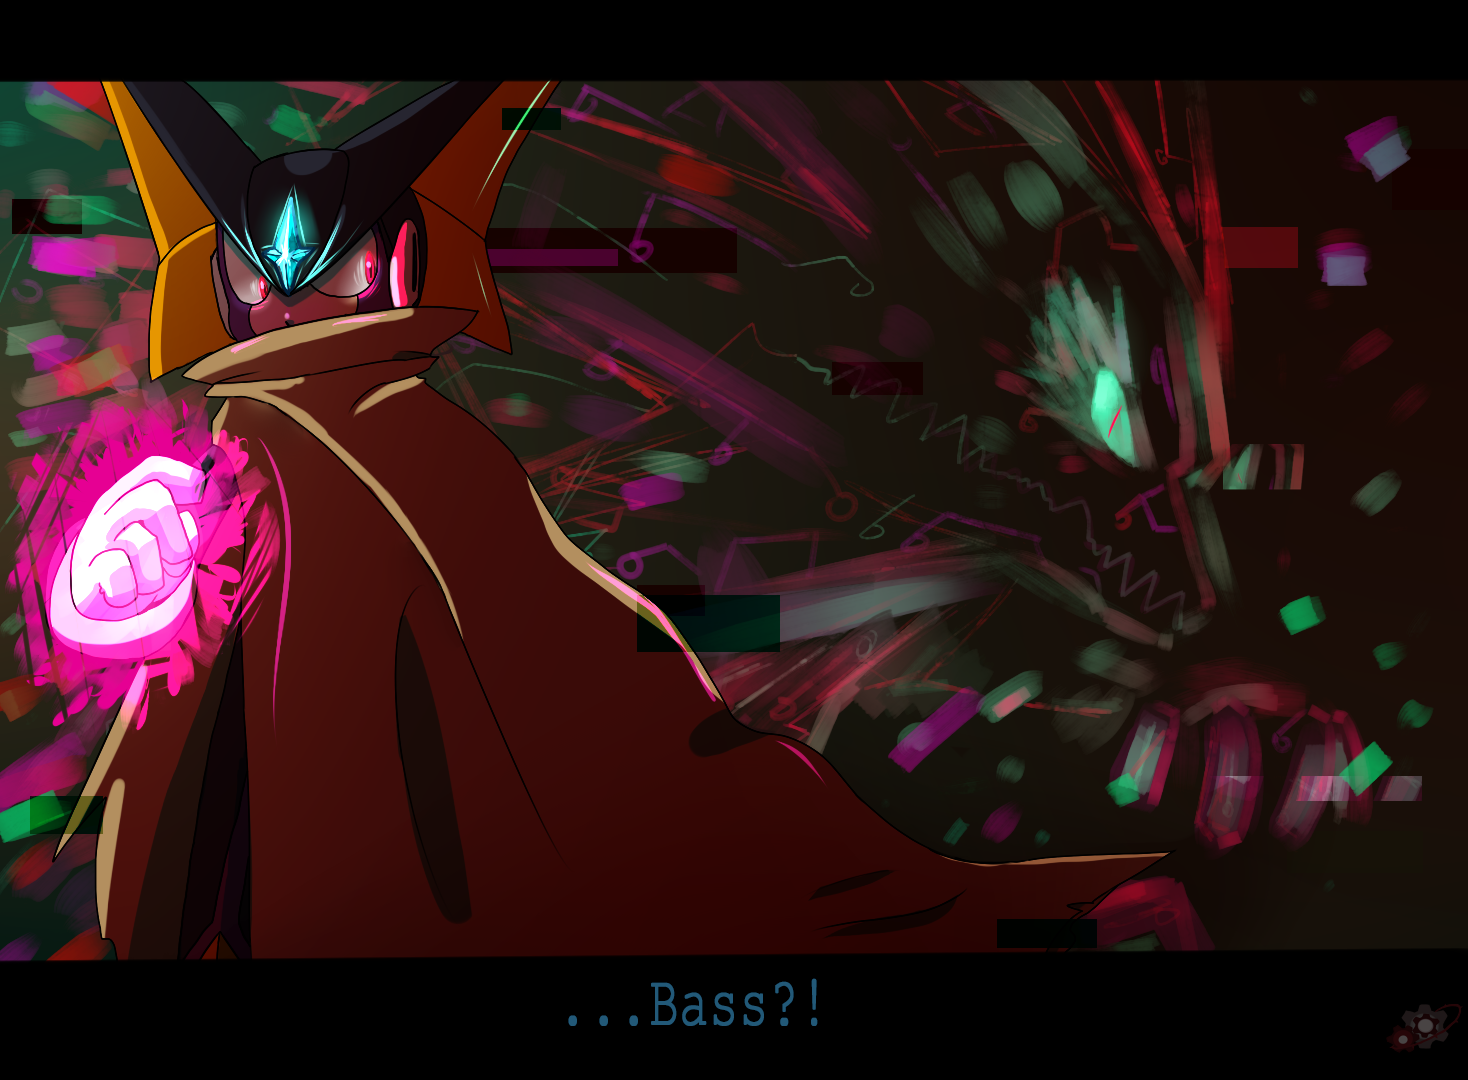 bass_exe_by_mechasvitch-d9xm1ox.png